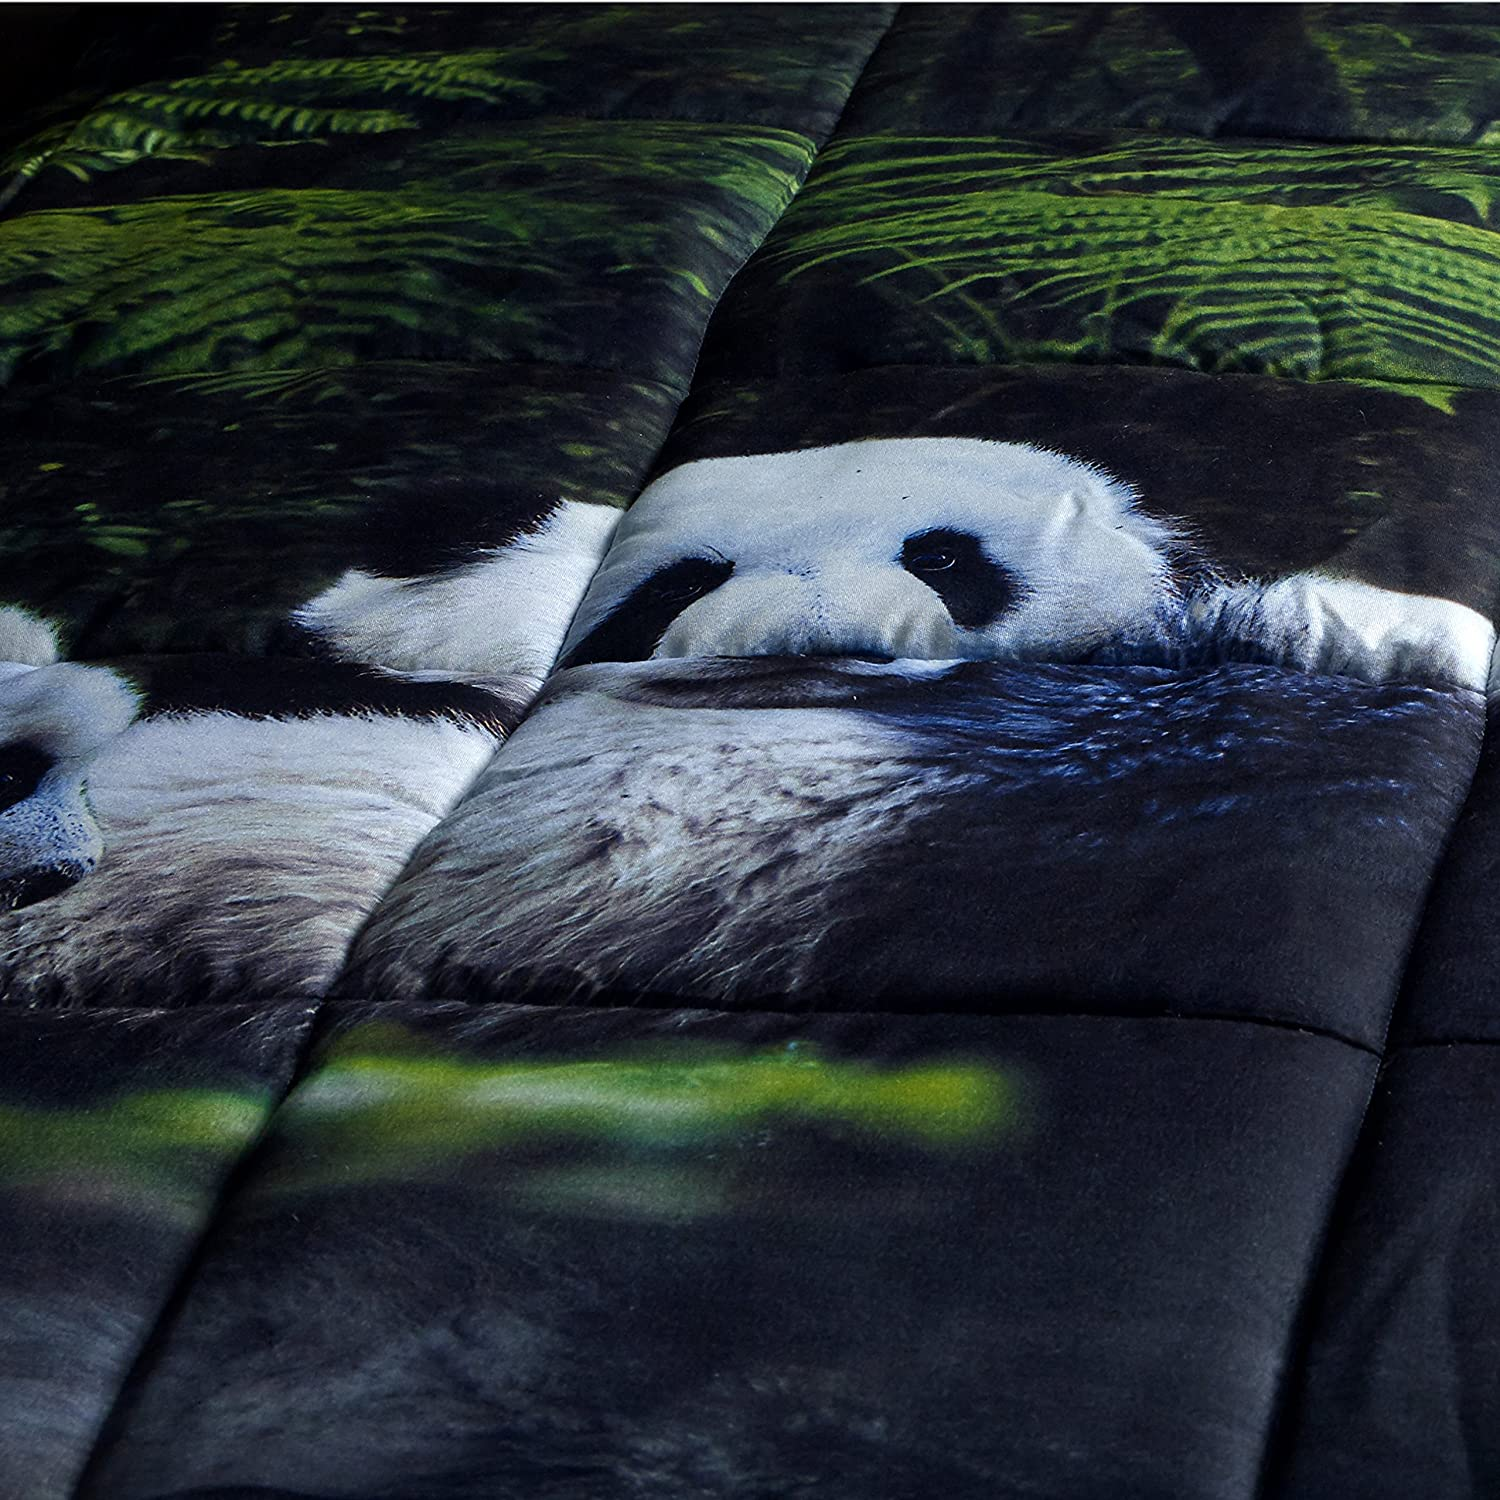 HIG 3D Comforter Set King Breathable Y29 3 Piece 3D Panda Mom and Kids in Forest Print Comforter Set King Size Soft - Box Stitched Fade Resistant -Includes 1 Comforter 2 Shams Hypoallergenic